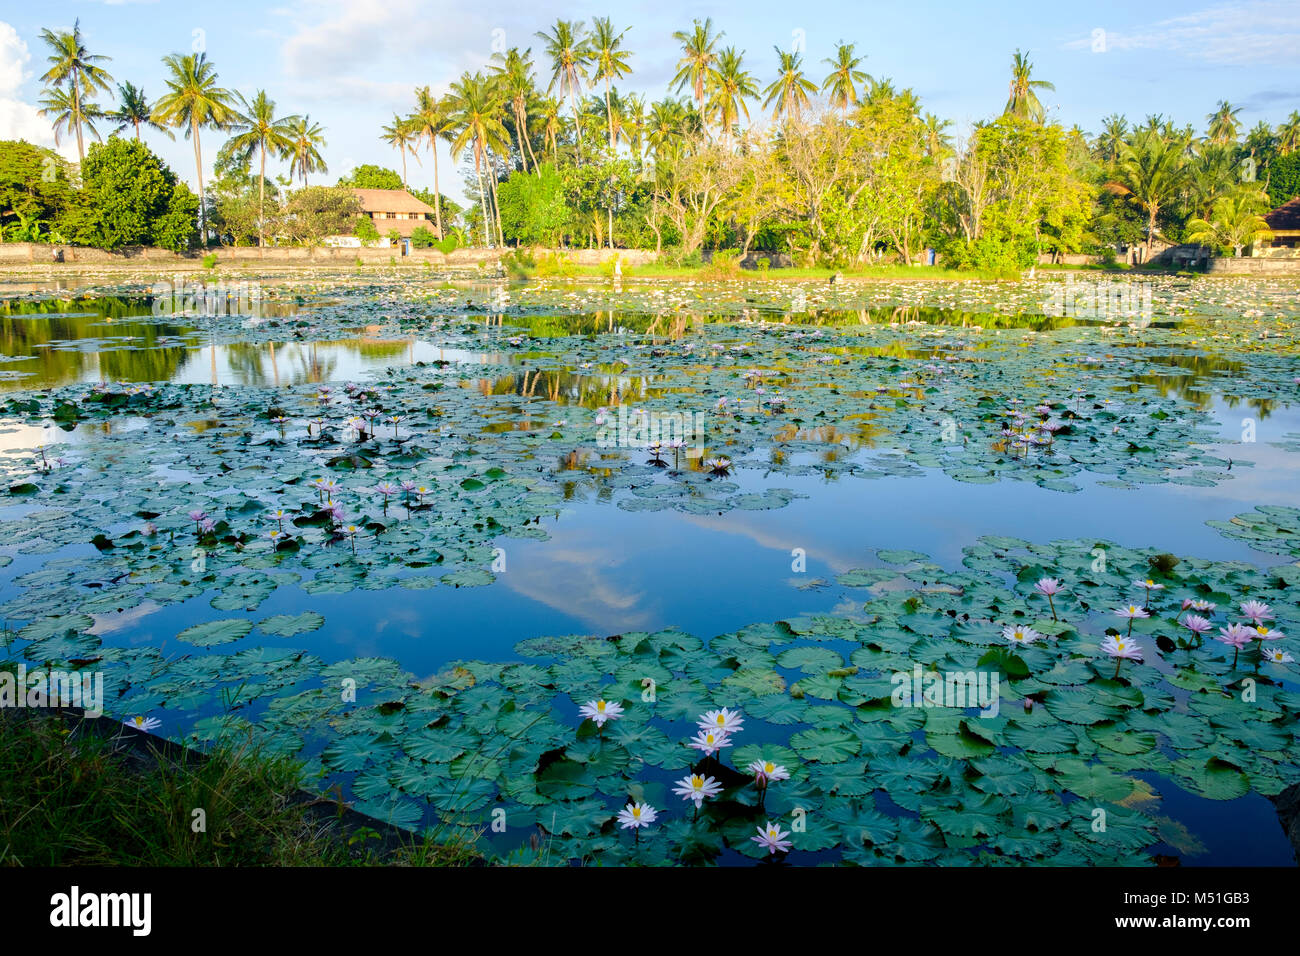 Water lillies on the incorrectly named 'Lotus Pond' after sunrise, Candidasa,, Bali, Indonesia. - Stock Image